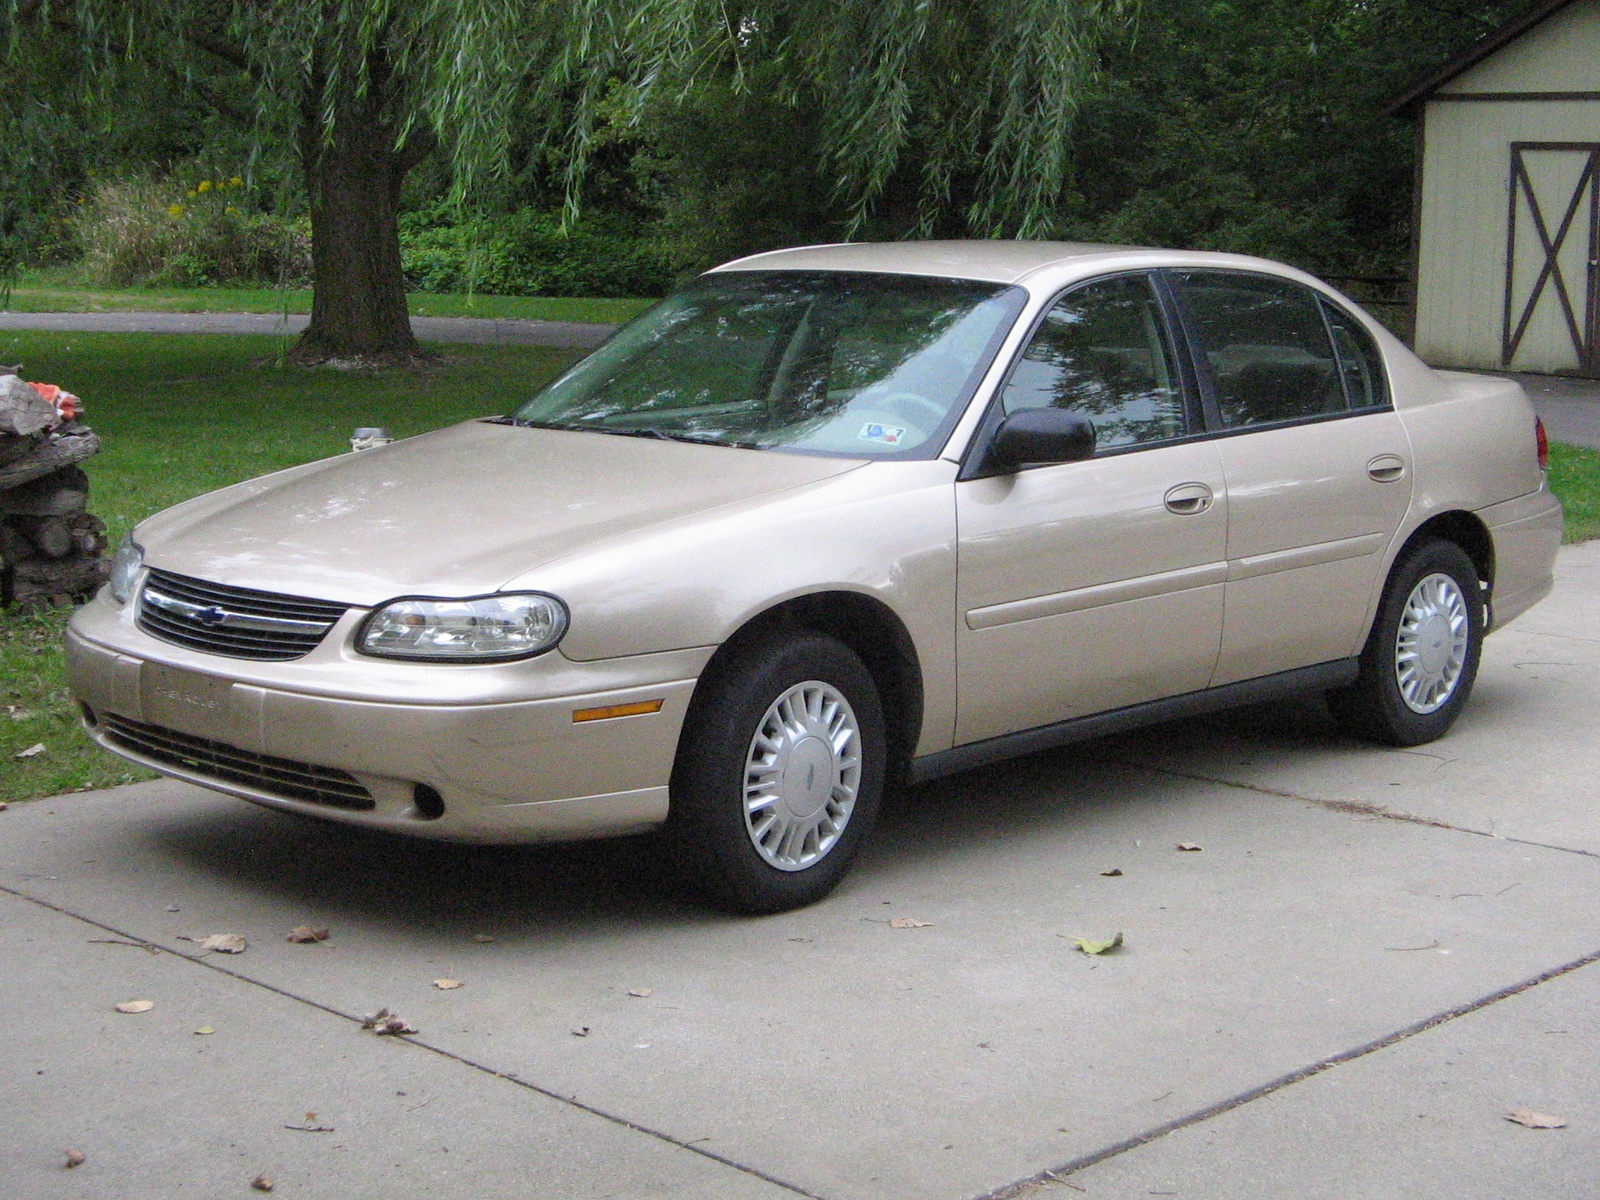 Picture of 2003 Chevrolet Malibu Base